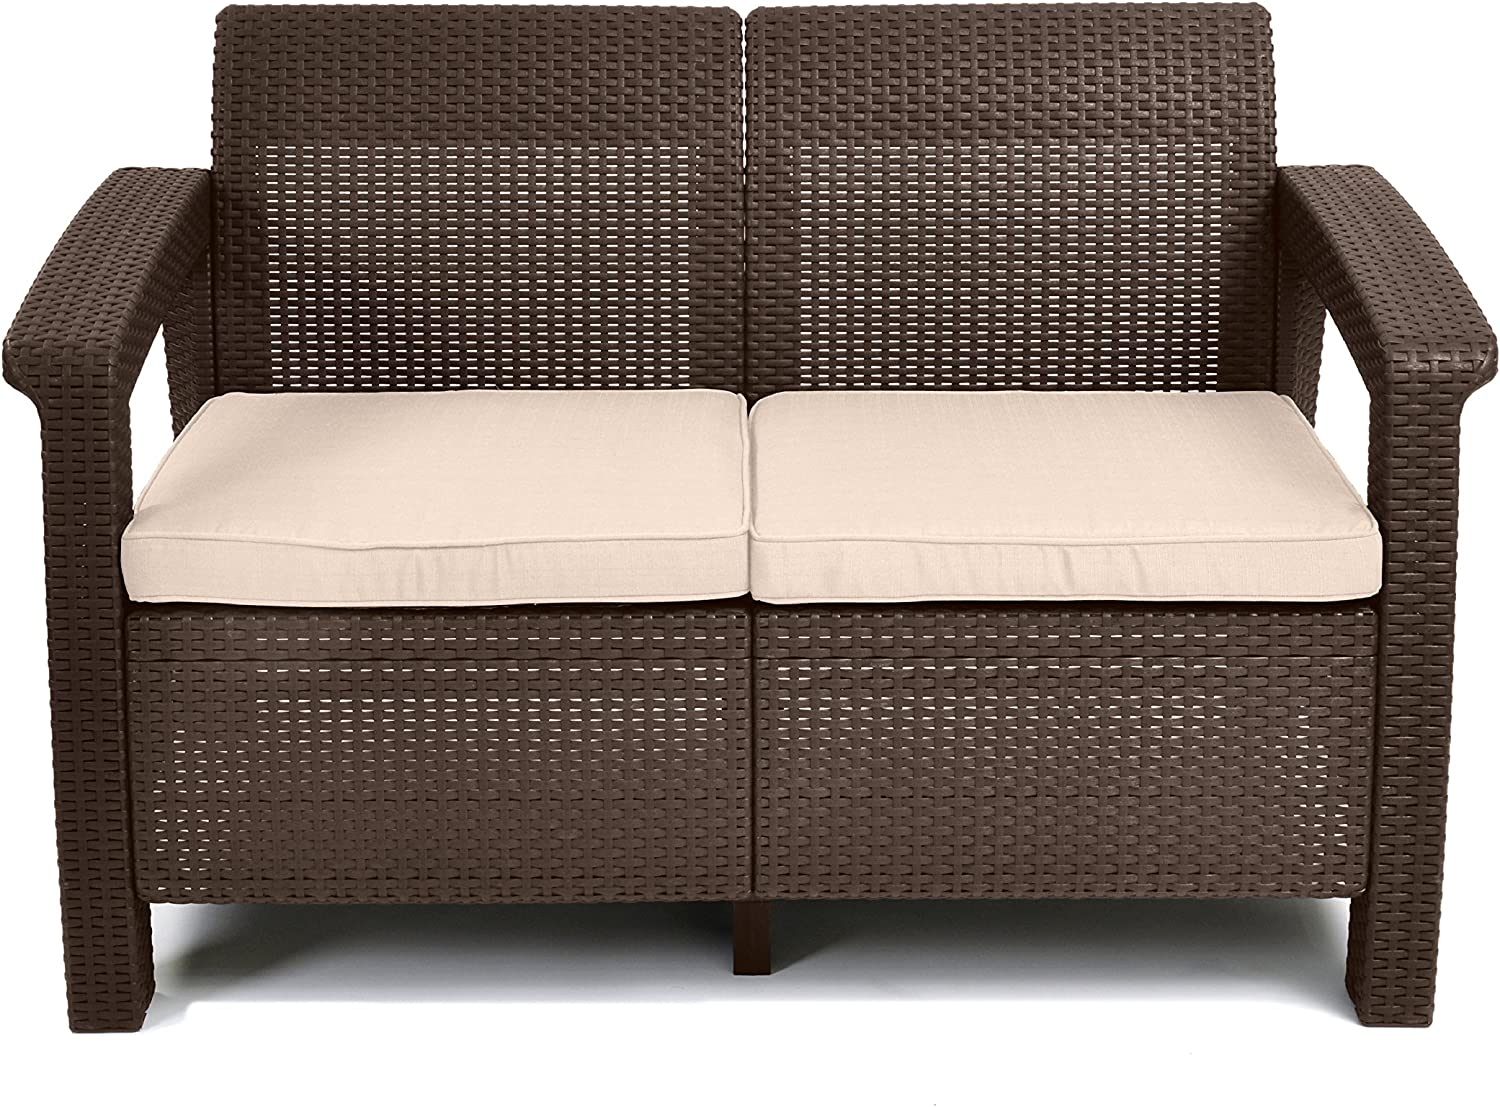 Keter Corfu Resin Wicker Outdoor Loveseat Patio Couch with Washable Cushions - Perfect for Balcony, Deck, and Poolside Seating and Furniture Sets, Brown : Patio Loveseats : Garden & Outdoor